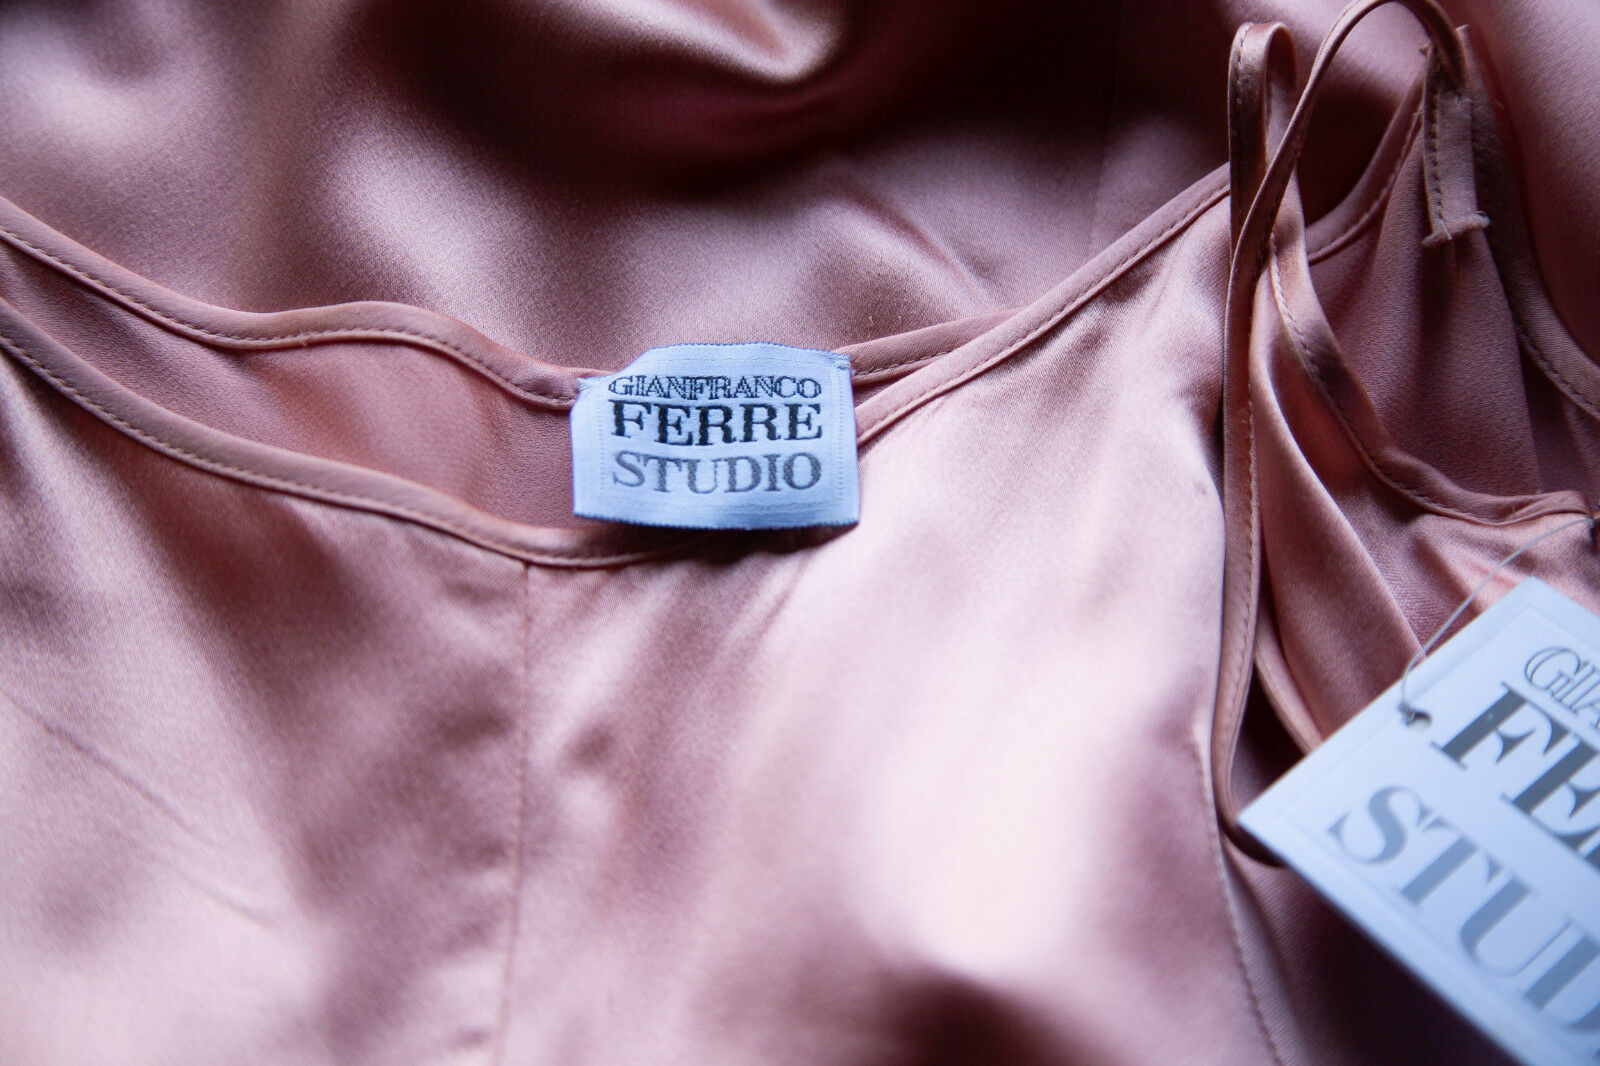 GIANFRANCO FERRE Studio Studio Studio vestito lungo rosa tg 42 long rosa dress c33afc